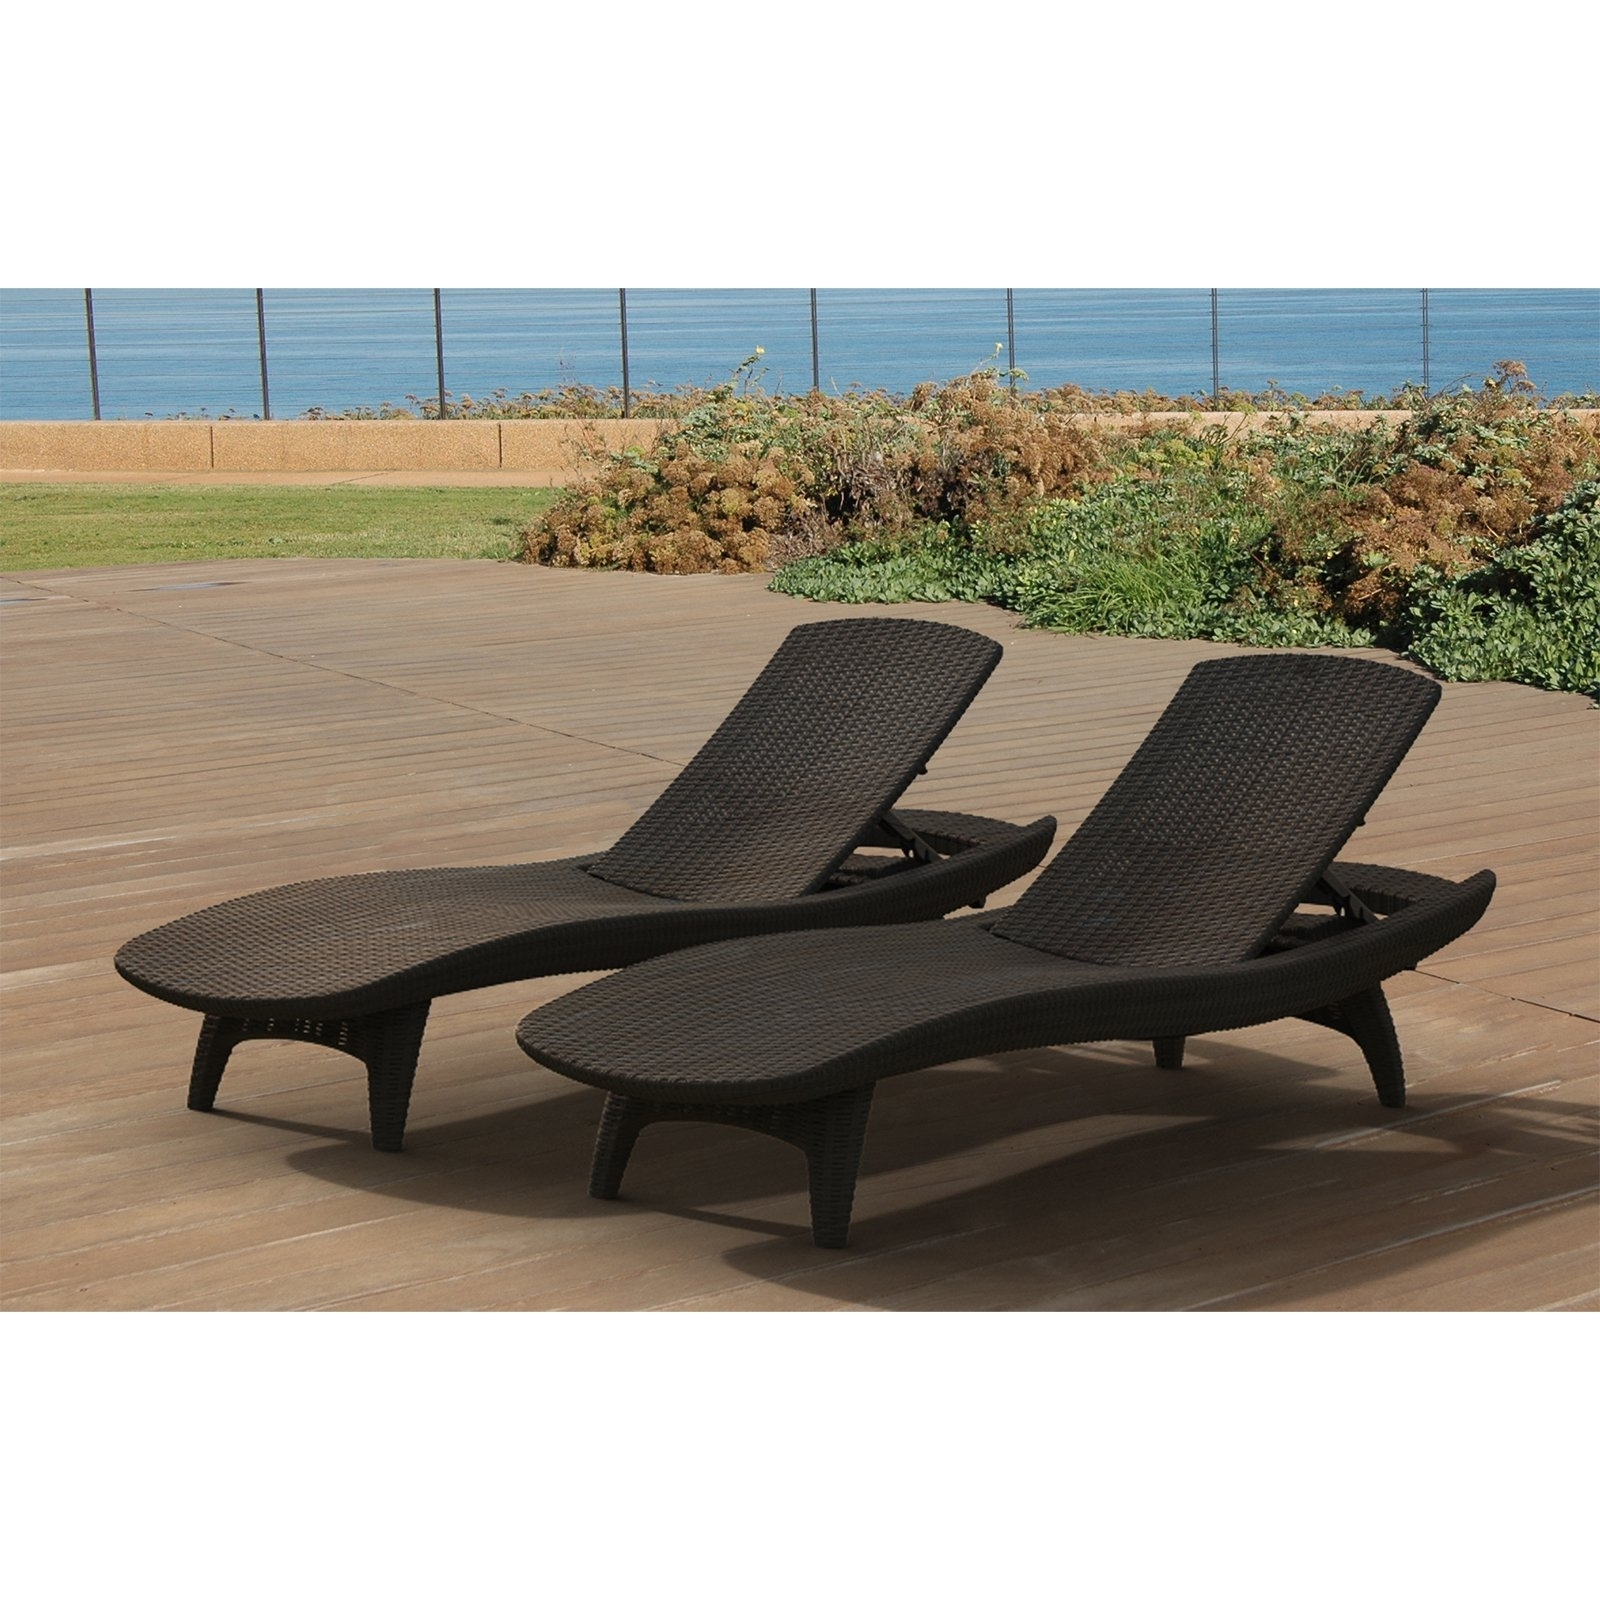 Fashionable Patio Furniture Outlet Inexpensive Outdoor Furniture Beach Lounge For Outdoor Patio Chaise Lounge Chairs (View 6 of 15)